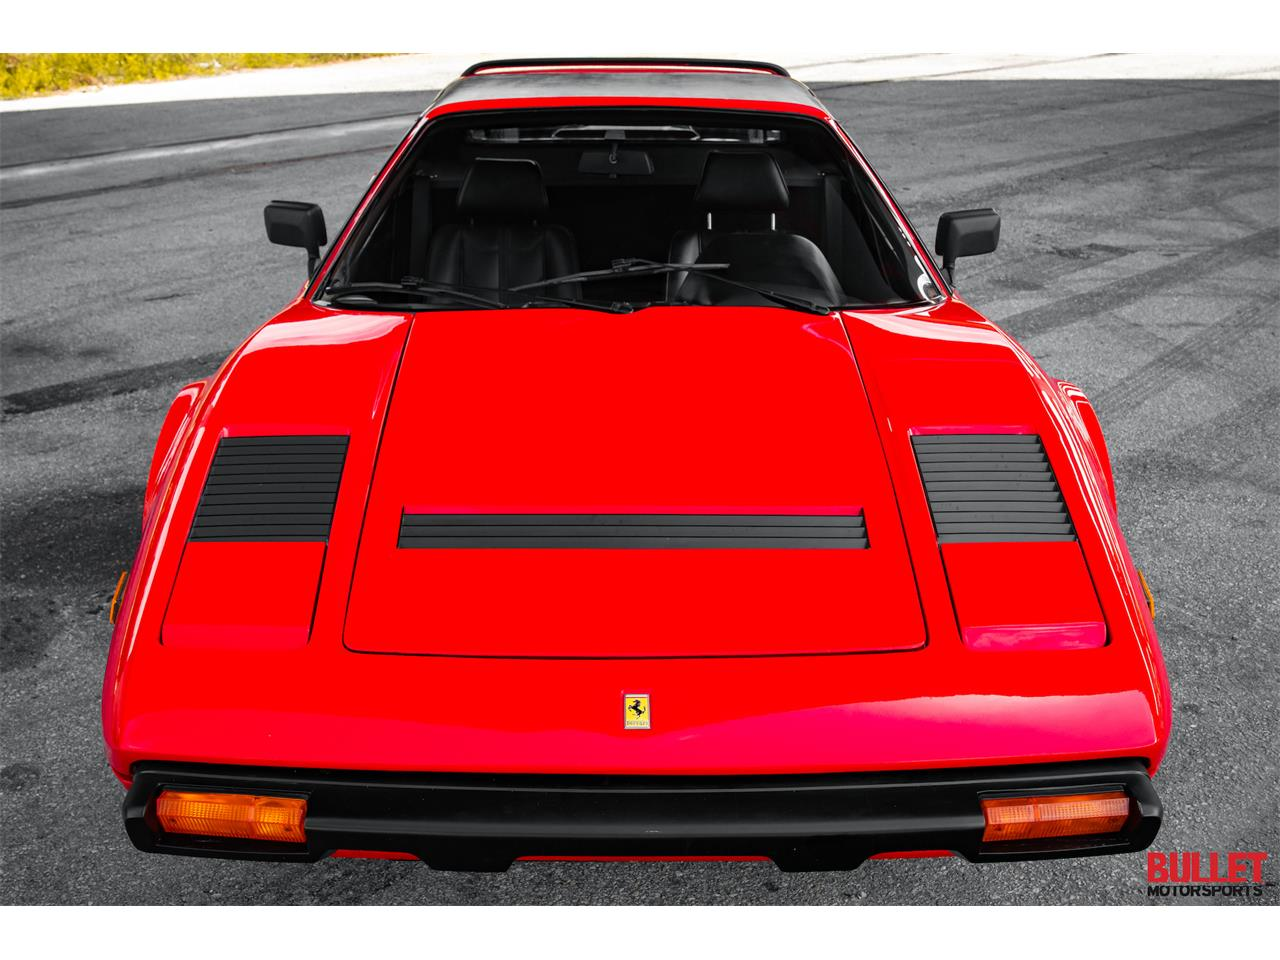 Large Picture of '85 Ferrari 308 GTS located in Florida - $65,000.00 - PPFL